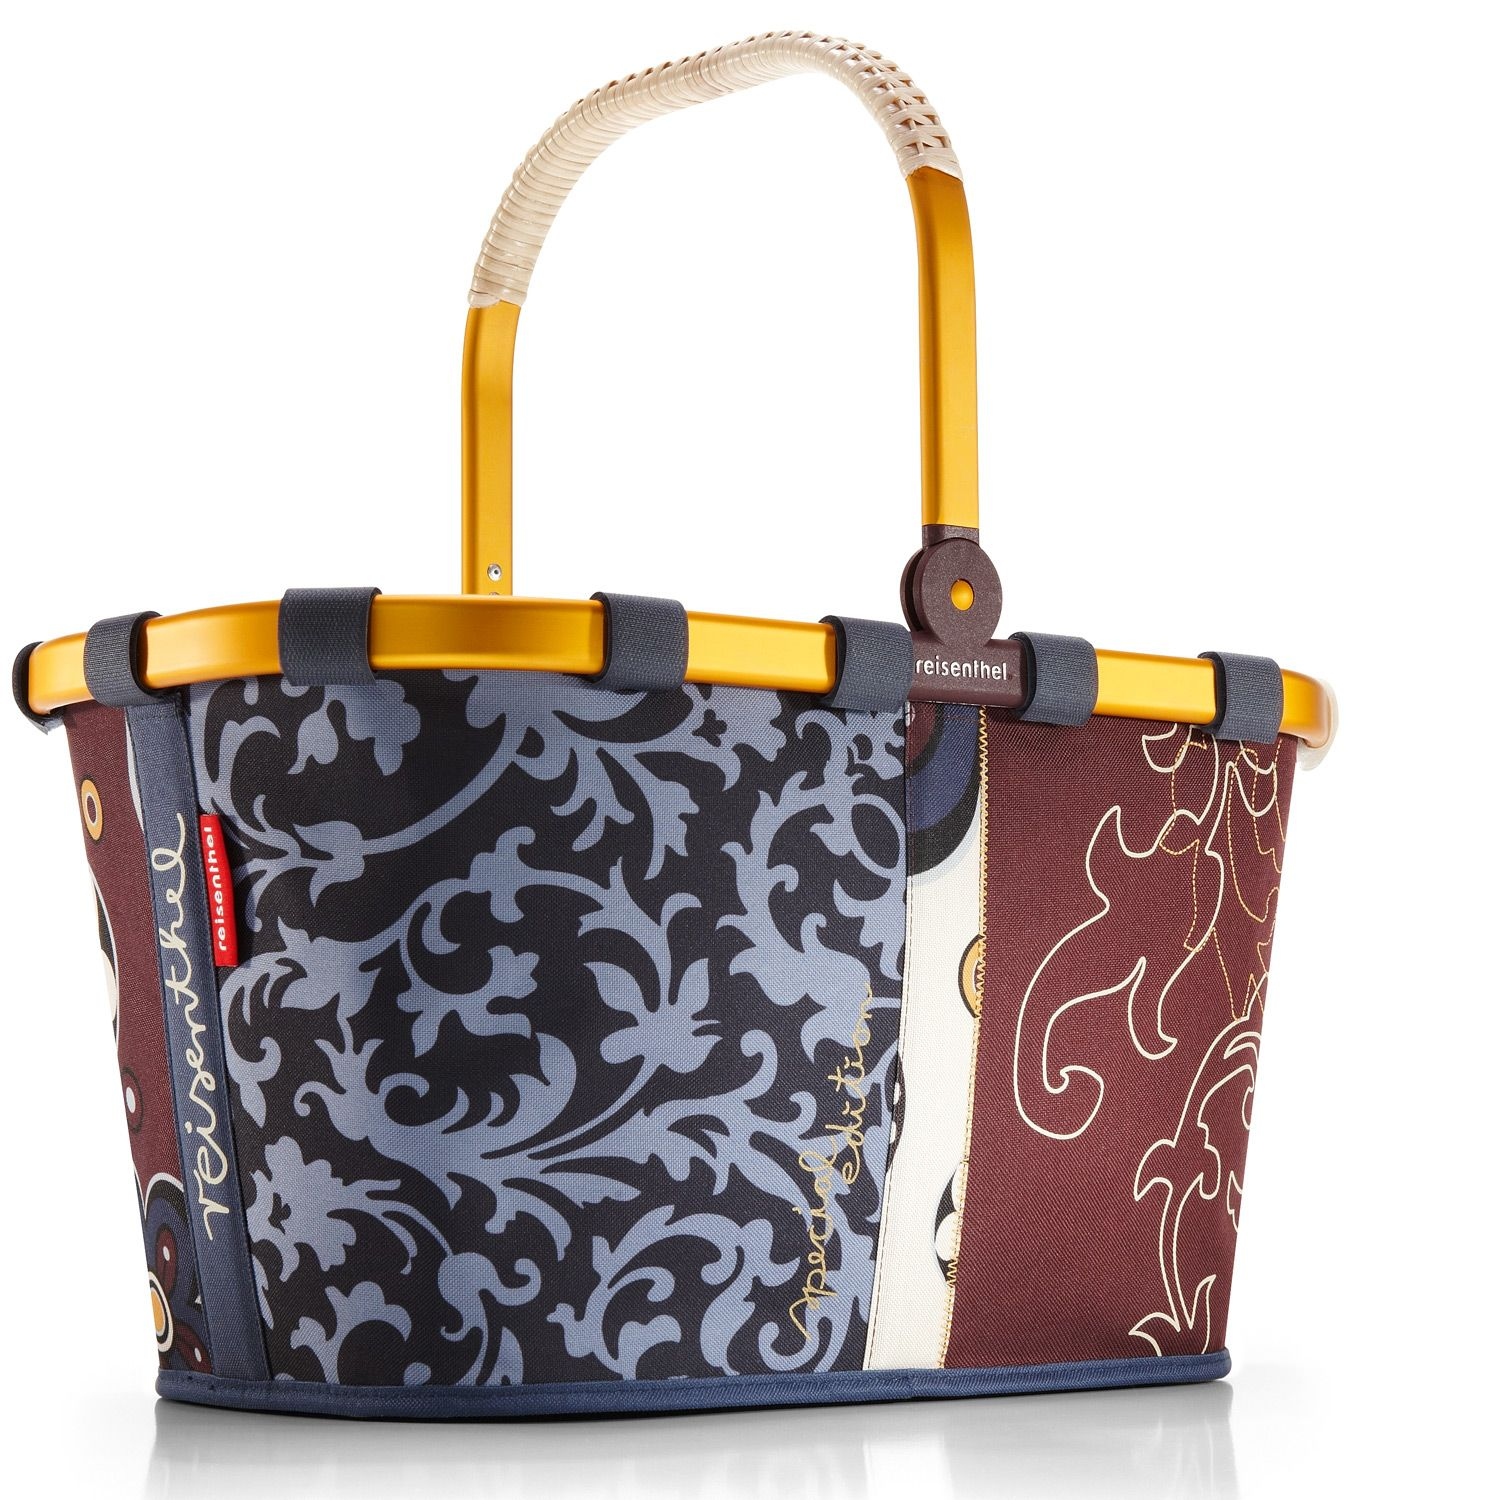 Einkaufstrolley Modern Reisenthel Shopper I Have This Exact One And I Take It Everywhere